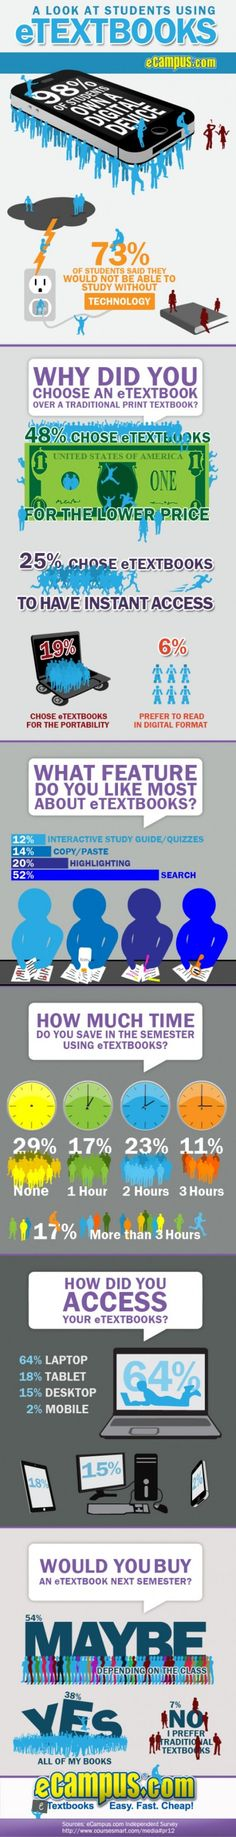 A Look At Student's Using eTextbooks https://twitter.com/OpusLearning